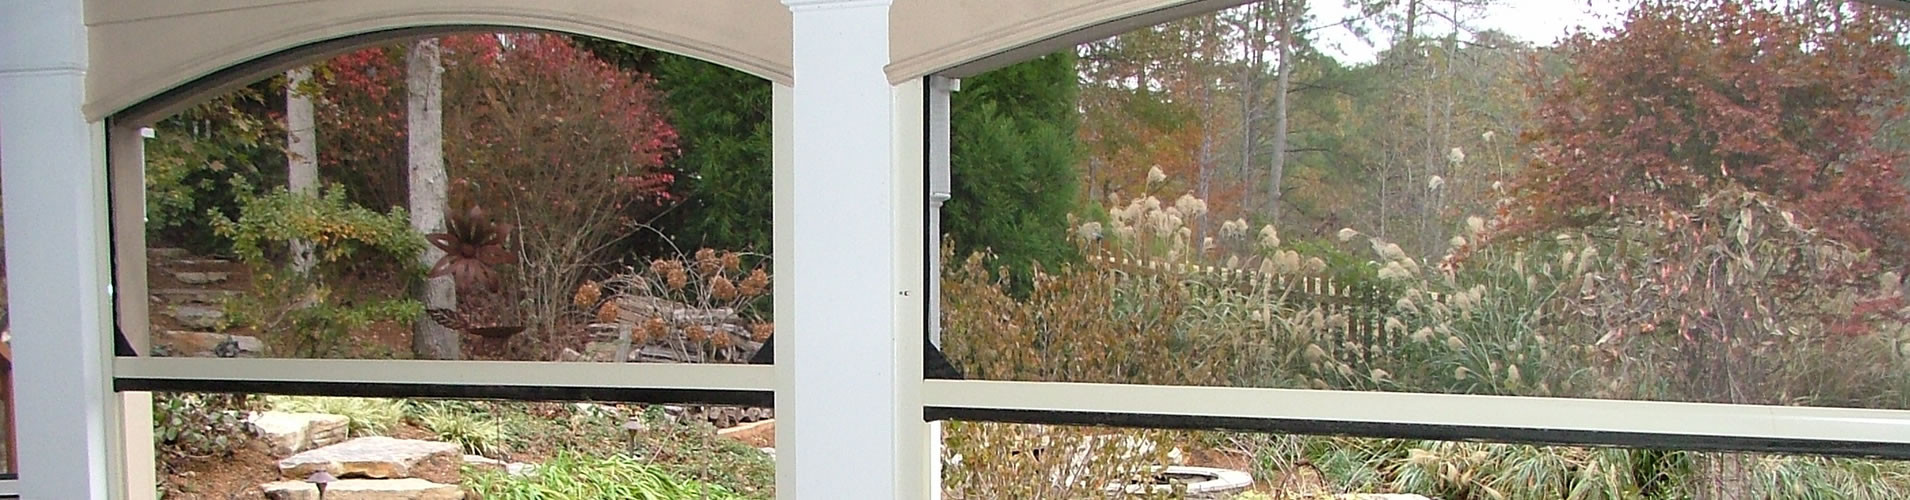 Austin Motorized Retractable Solar Screens